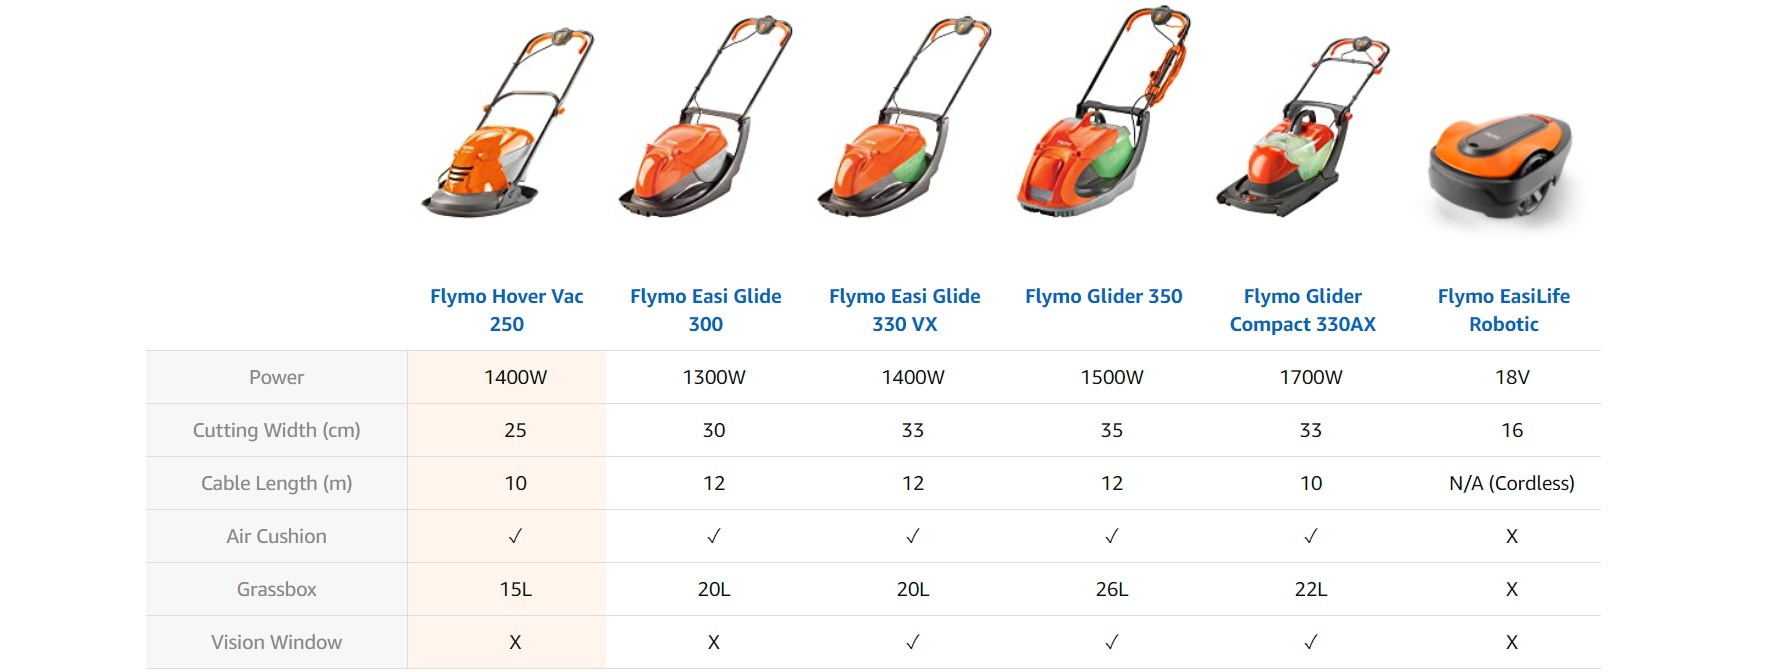 Flymo Electric Mower Comparison Chart